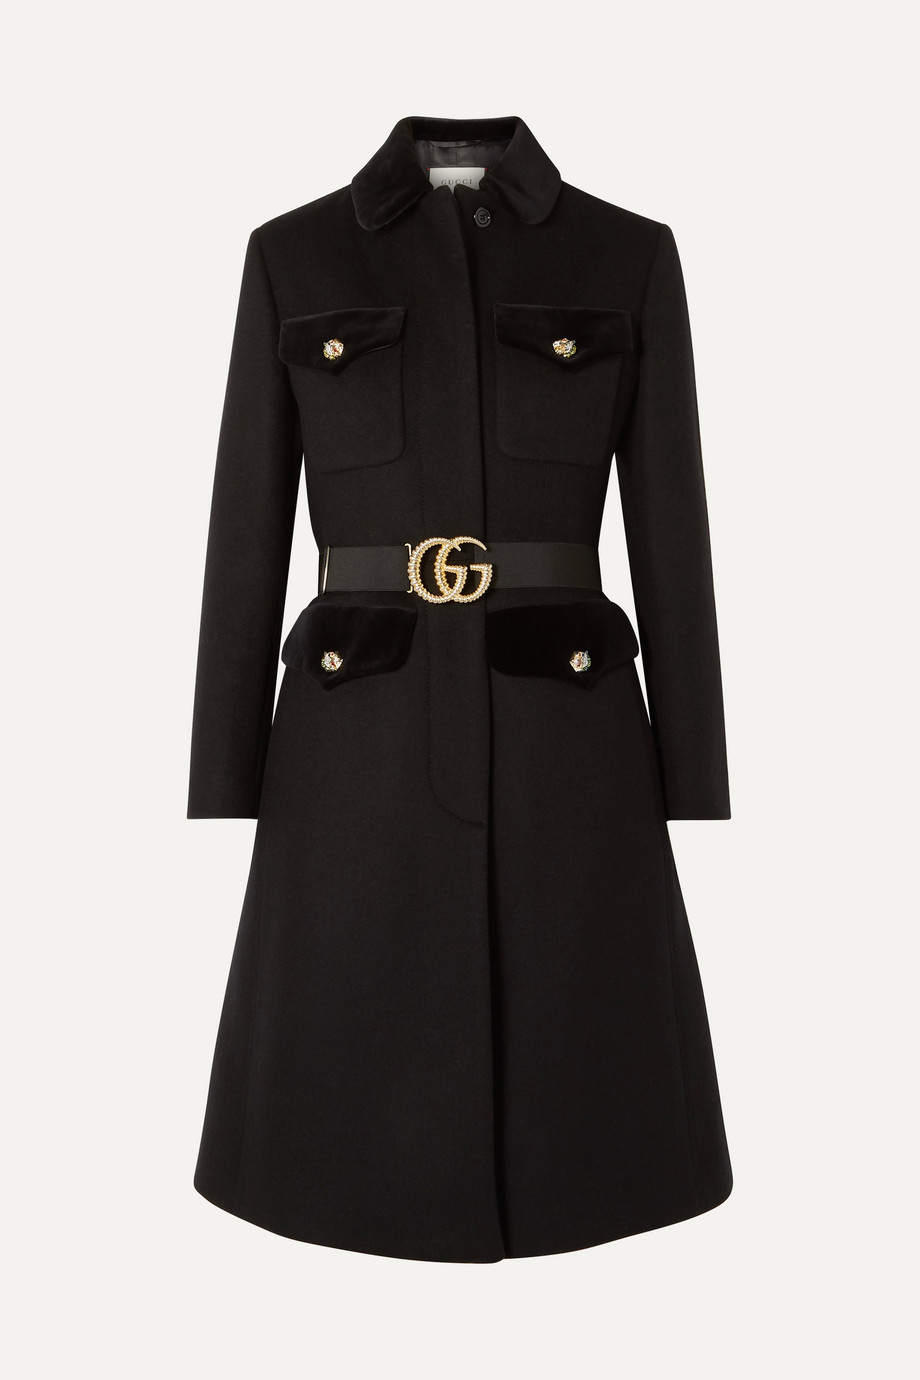 Gucci Belted velvet-trimmed wool-blend felt coat